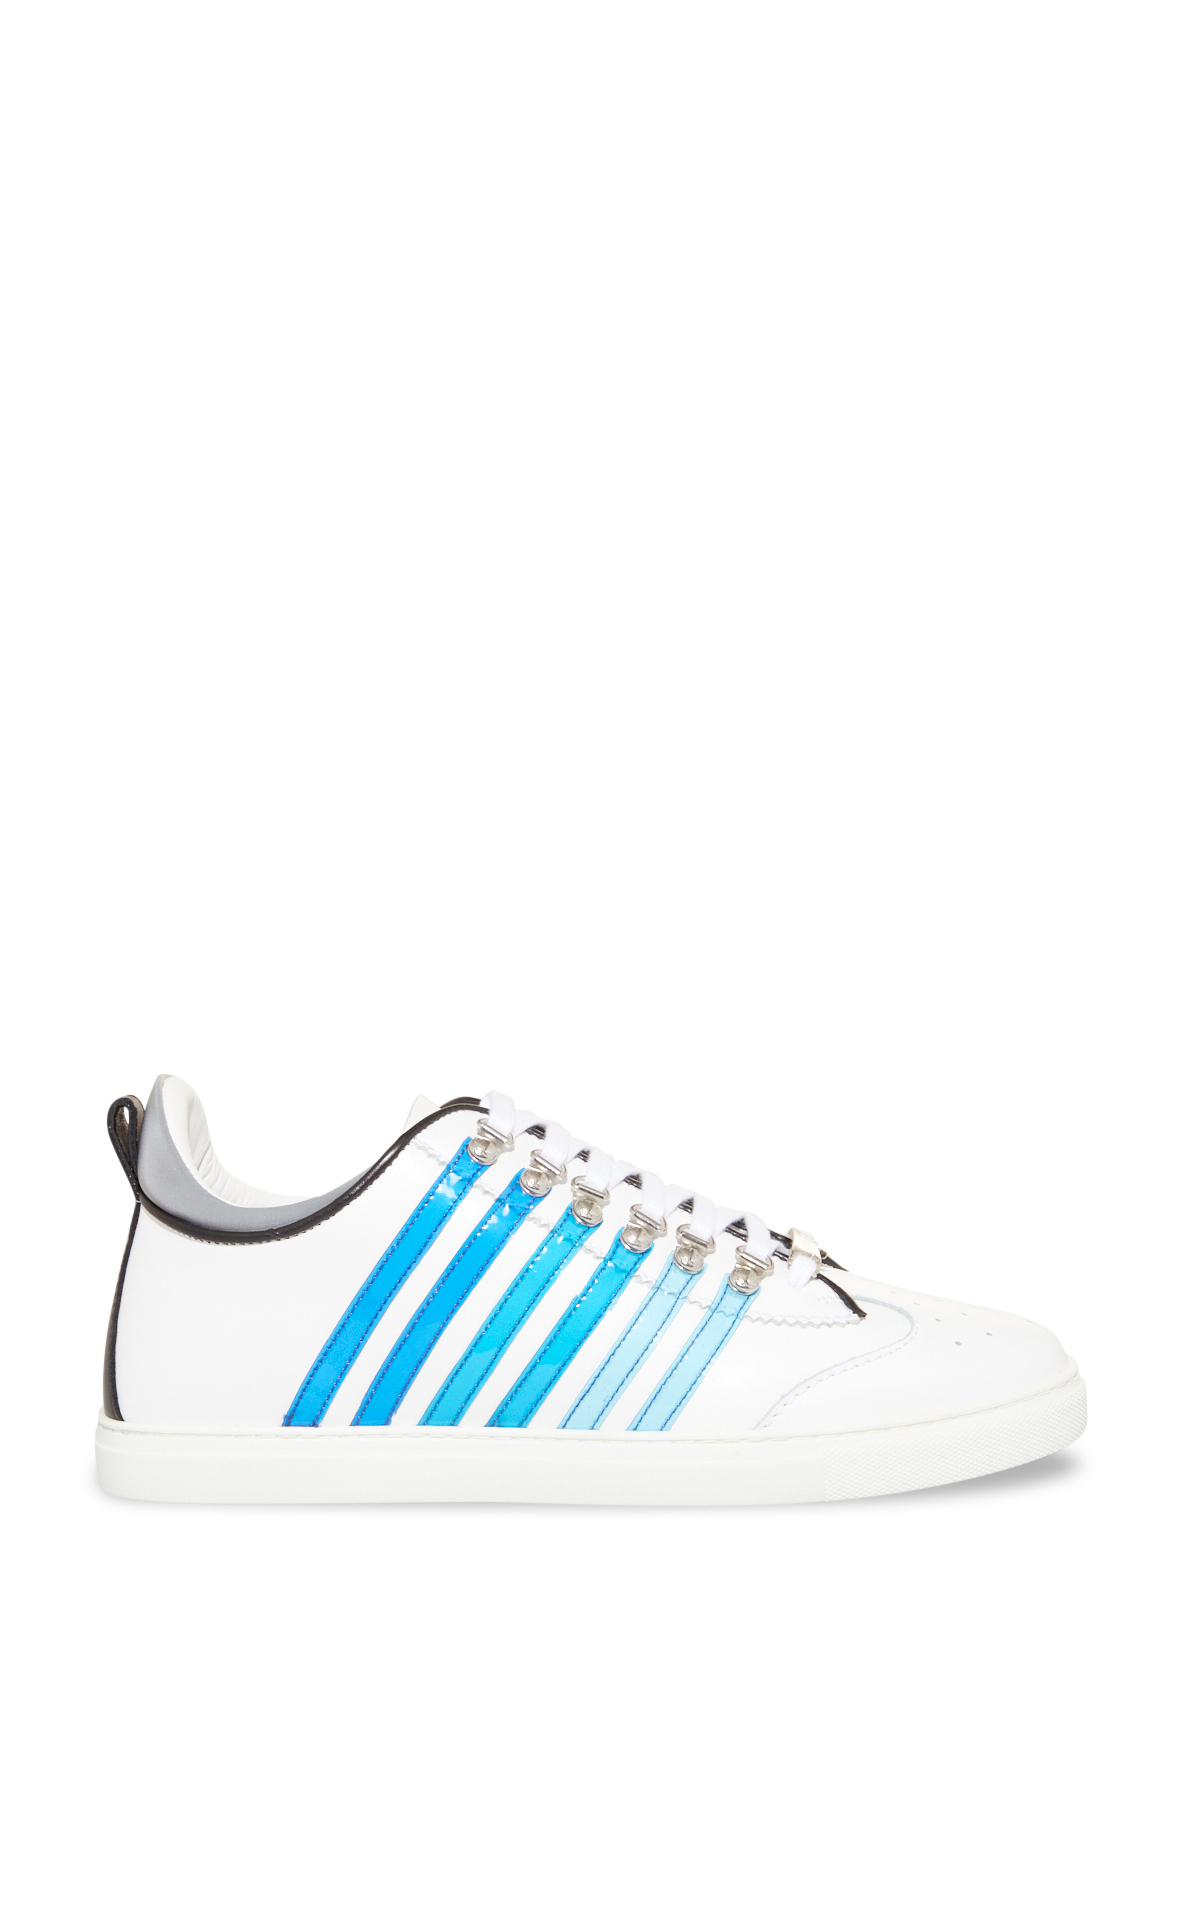 La Vallée Village Dsquared2 Blue and white sneakers